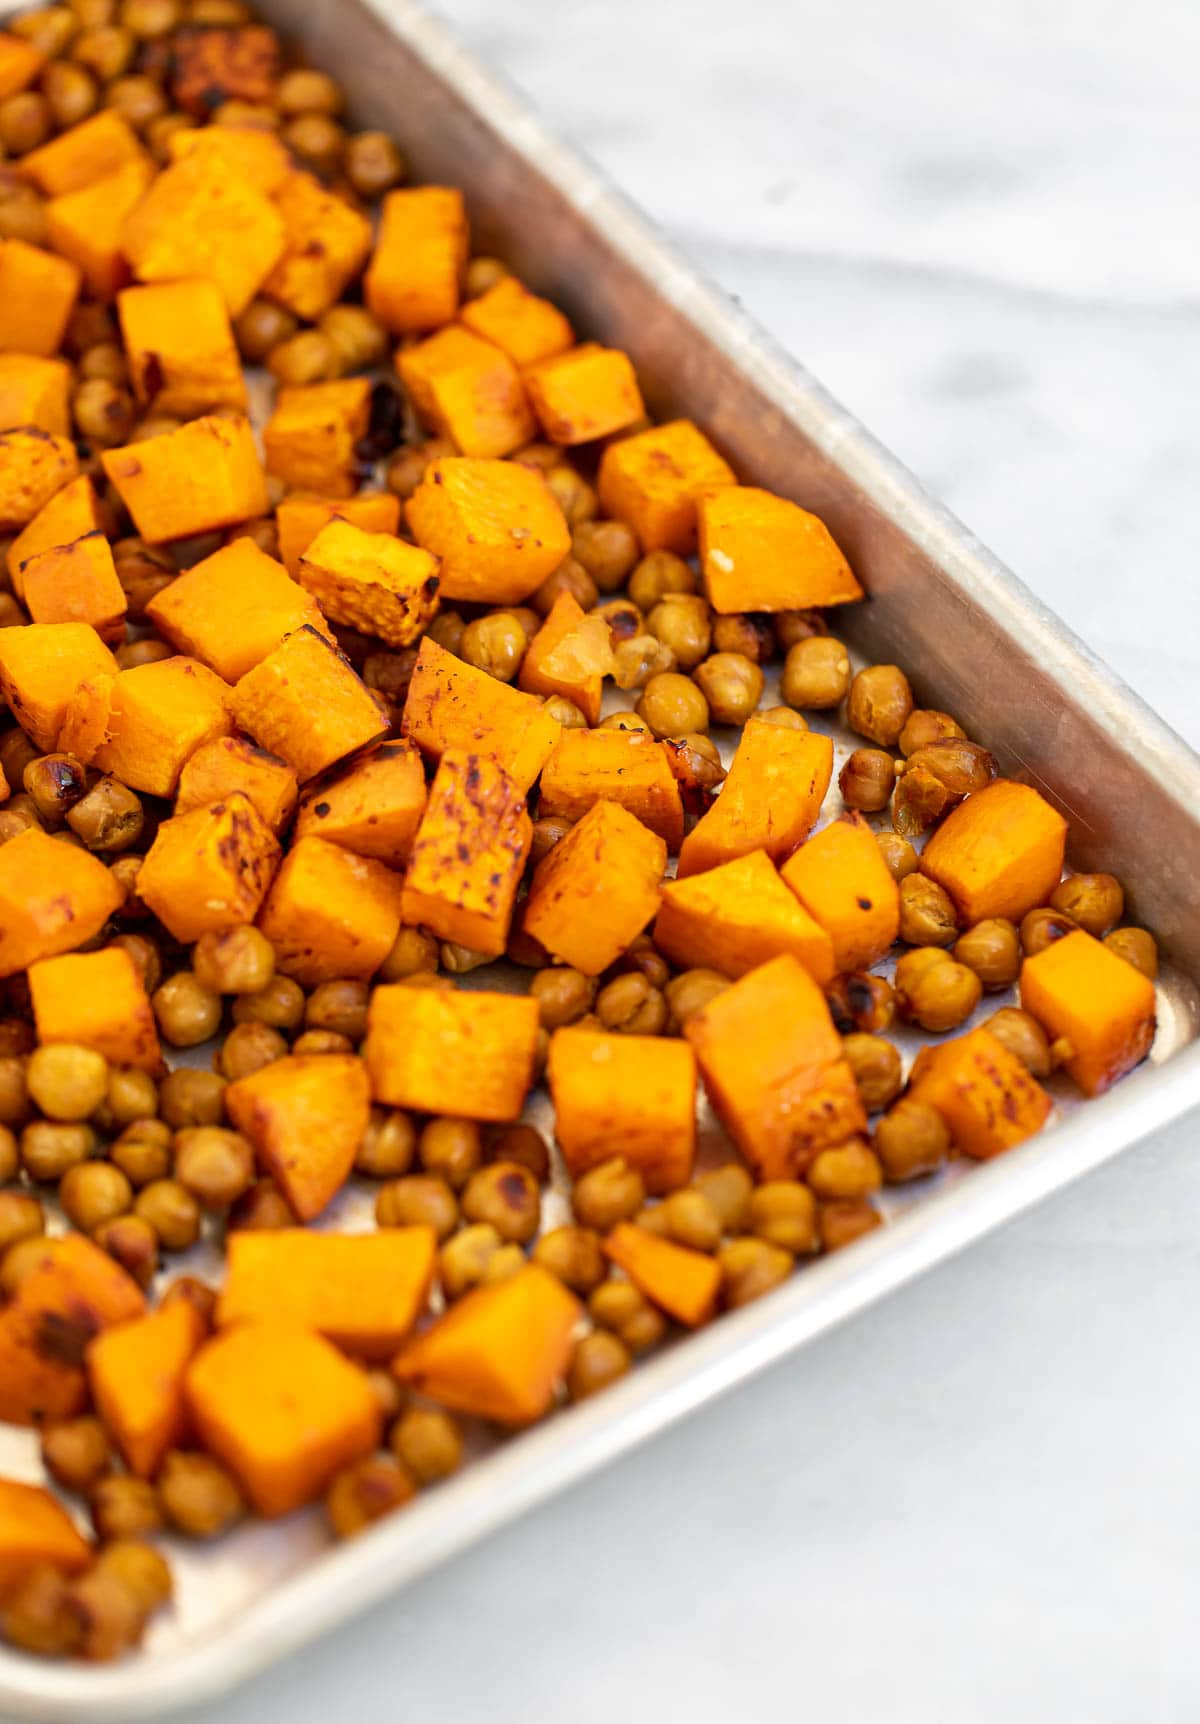 Roasted sweet potatoes and chickpeas on a baking tray.